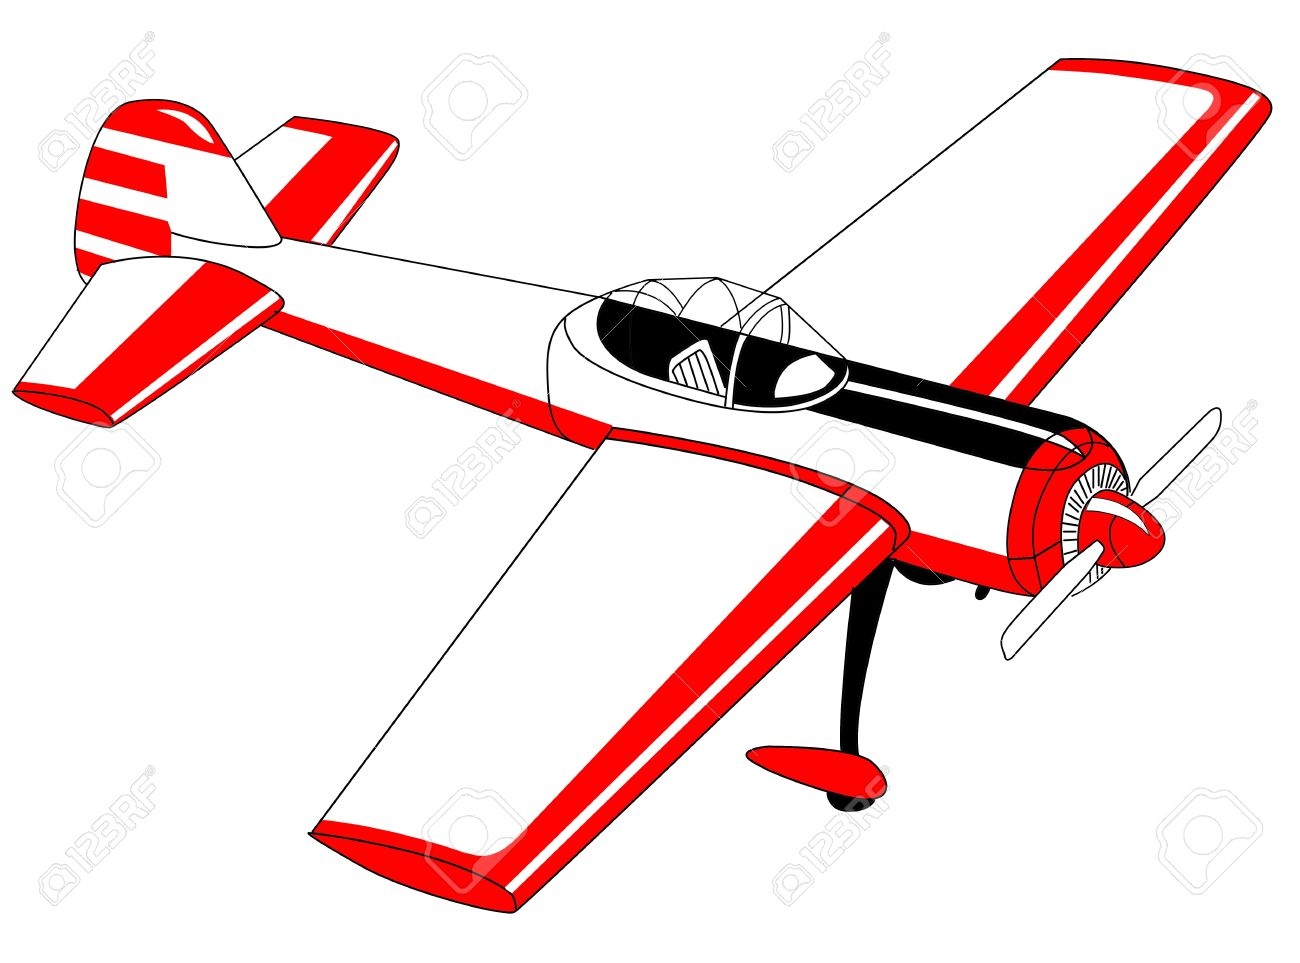 1300x963 Plane Drawing On White Background Royalty Free Cliparts, Vectors